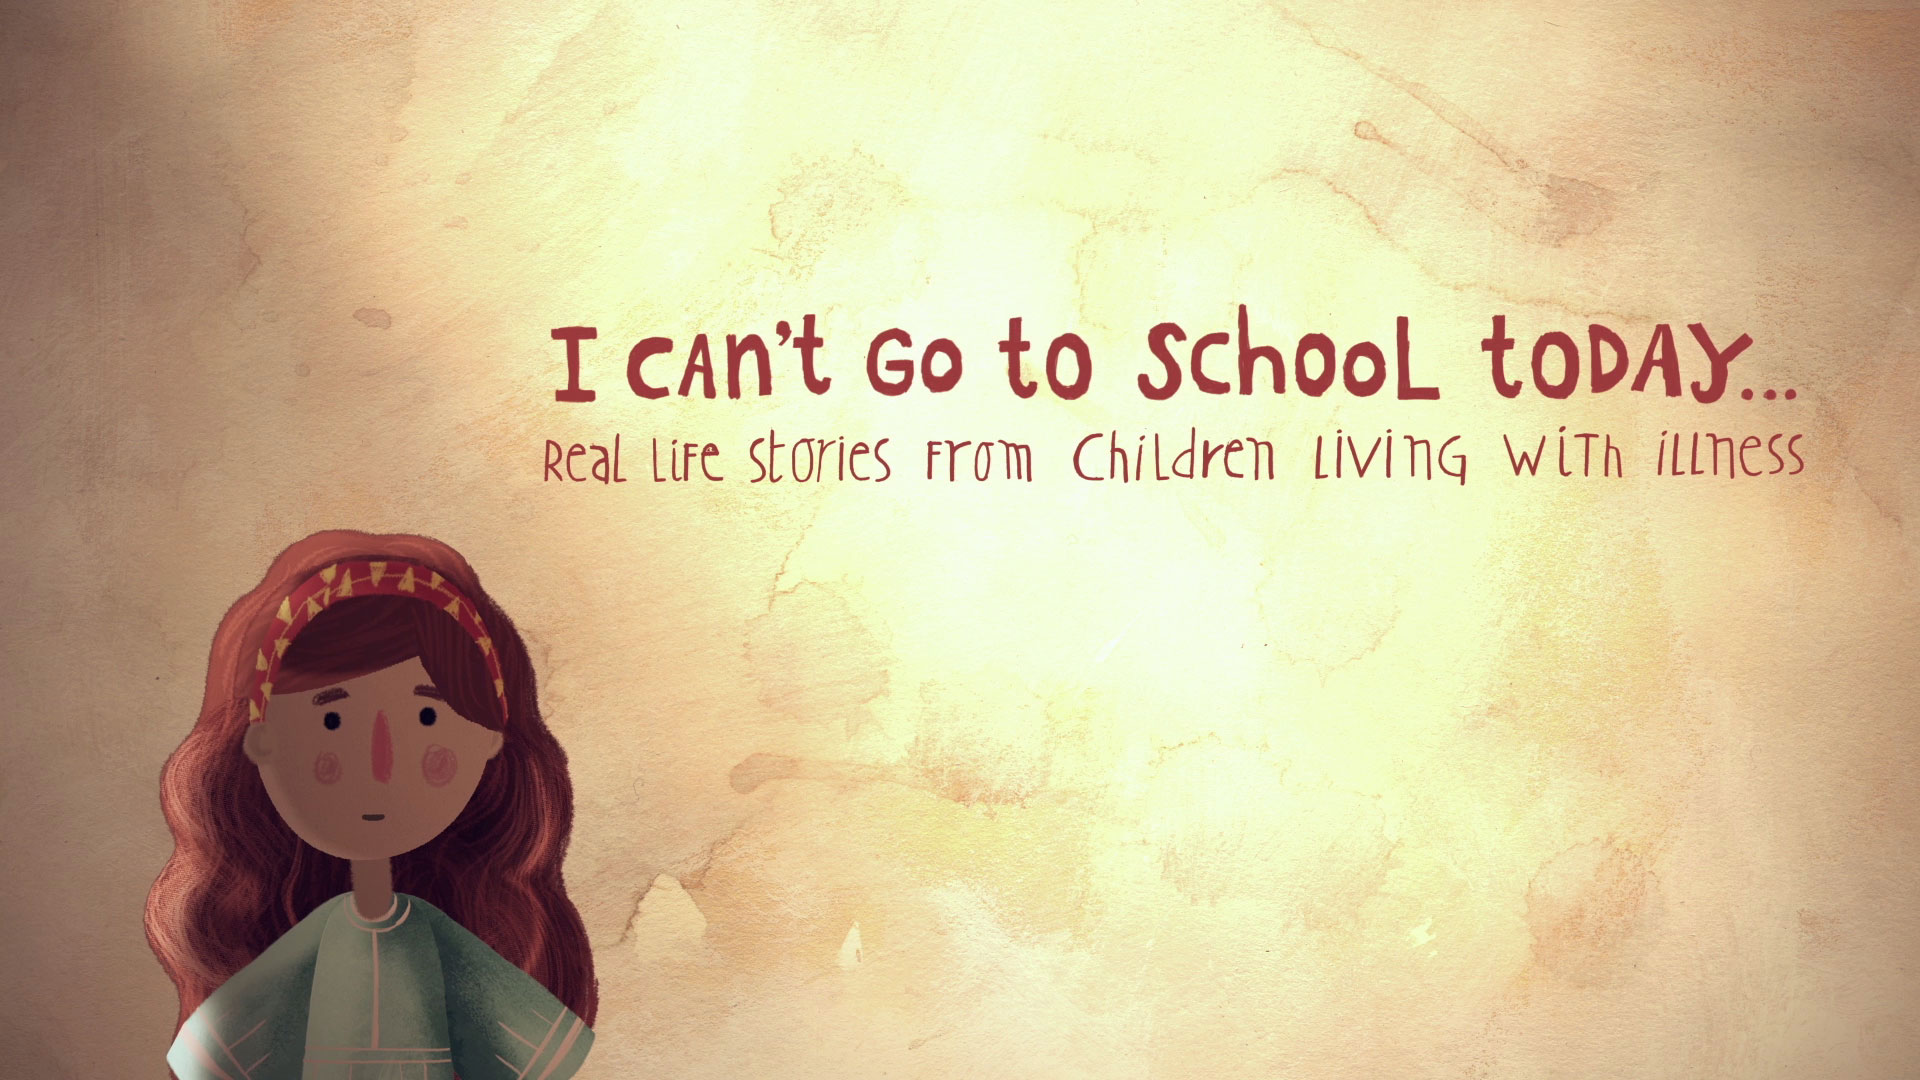 I can't go to school today | Mosaic Films